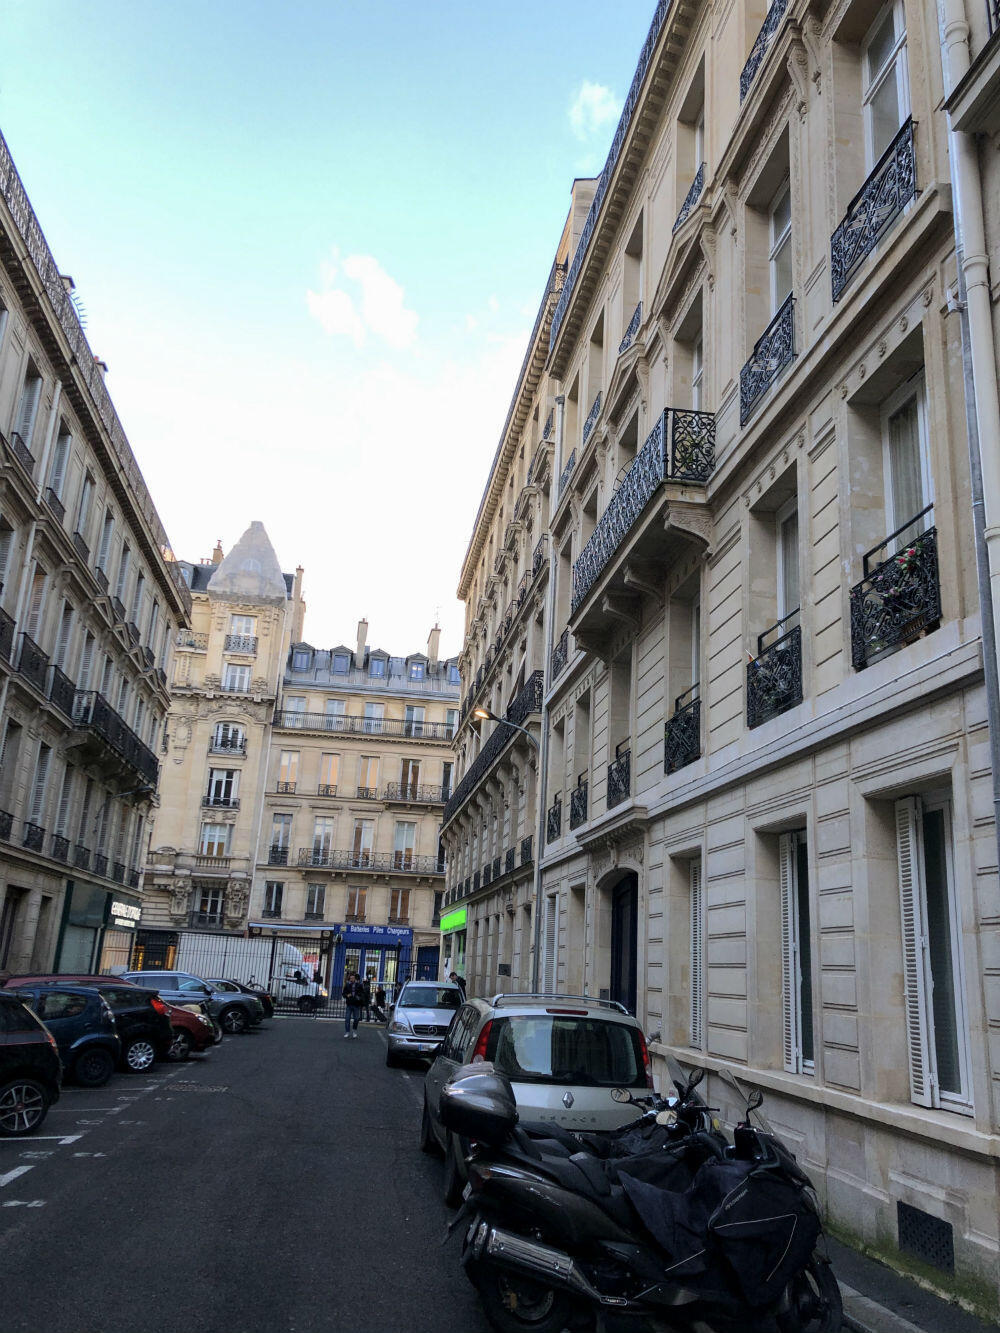 Near the Galeries Lafayette, in the 9th arrondissement, the city has upgraded and converted 29 apartments in a classic Haussmann-era building.